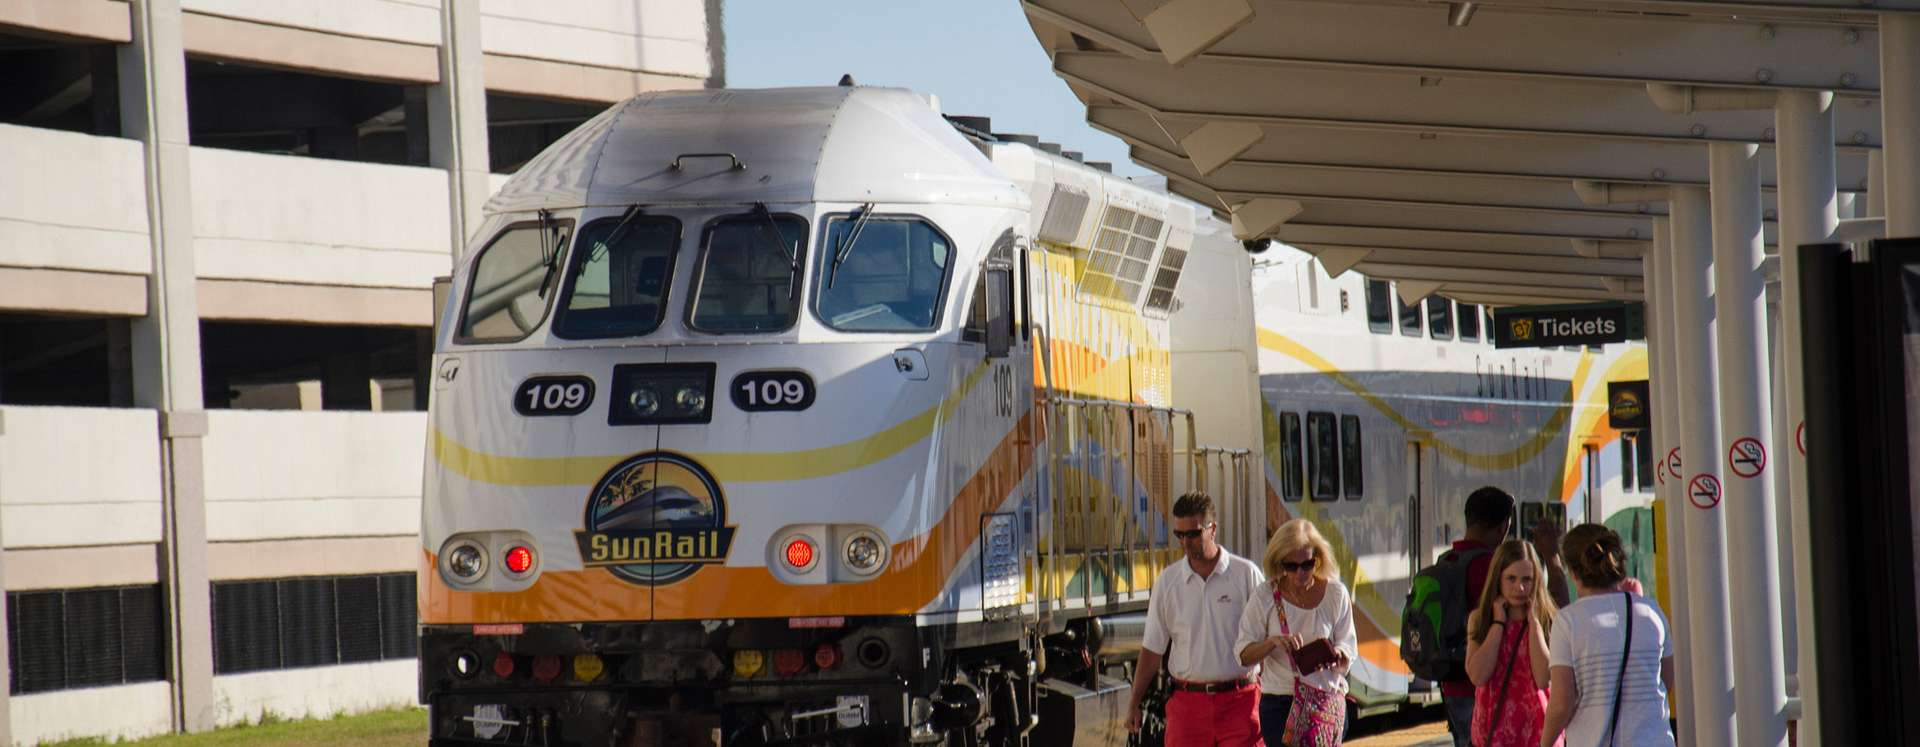 Sunrail train arriving at the Church Street Station in Downtown Orlando